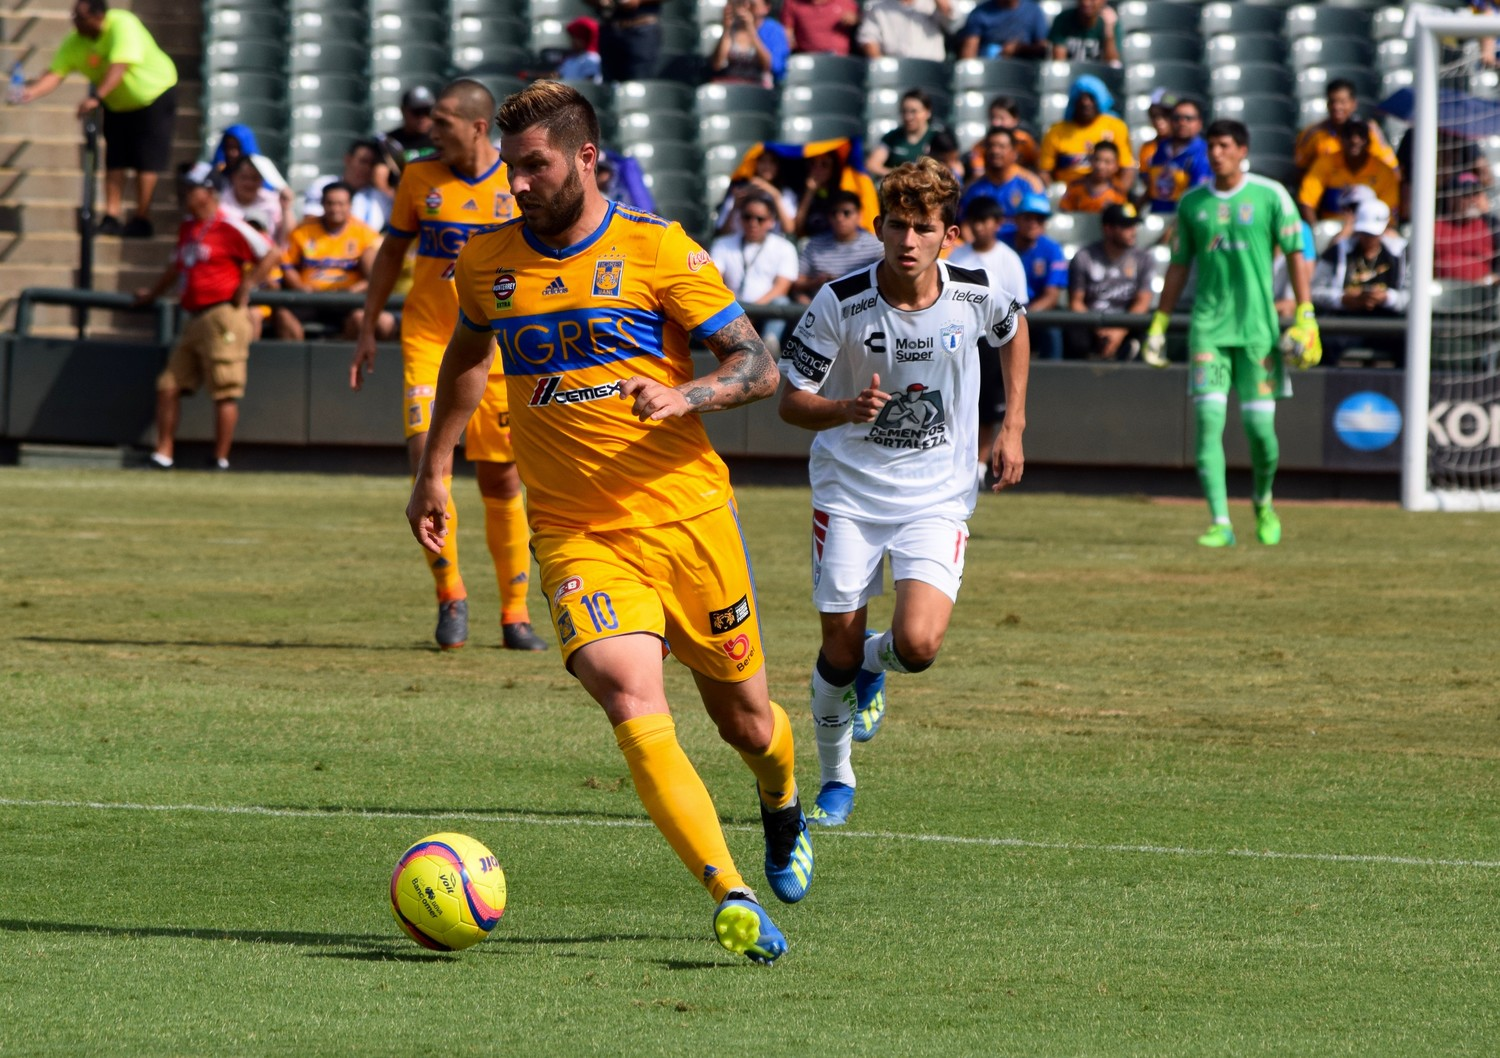 André-Pierre Gignac, left, and Tigres beat Pachuca 2-0 in a friendly at Dell Diamond on Sunday evening.